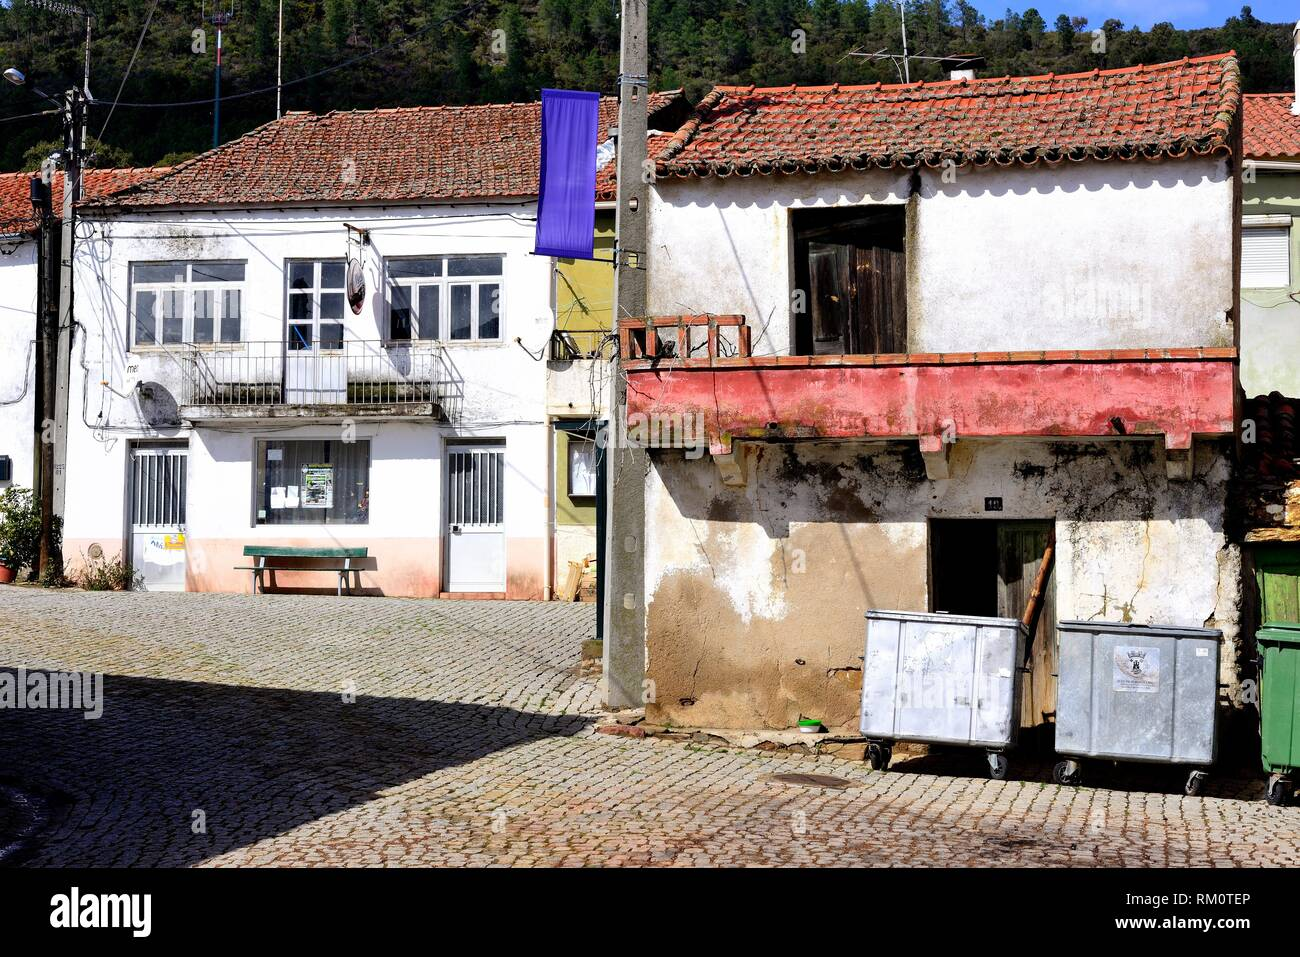 Customary facades in Monfortinho, Castelo Branco, Portugal. - Stock Image